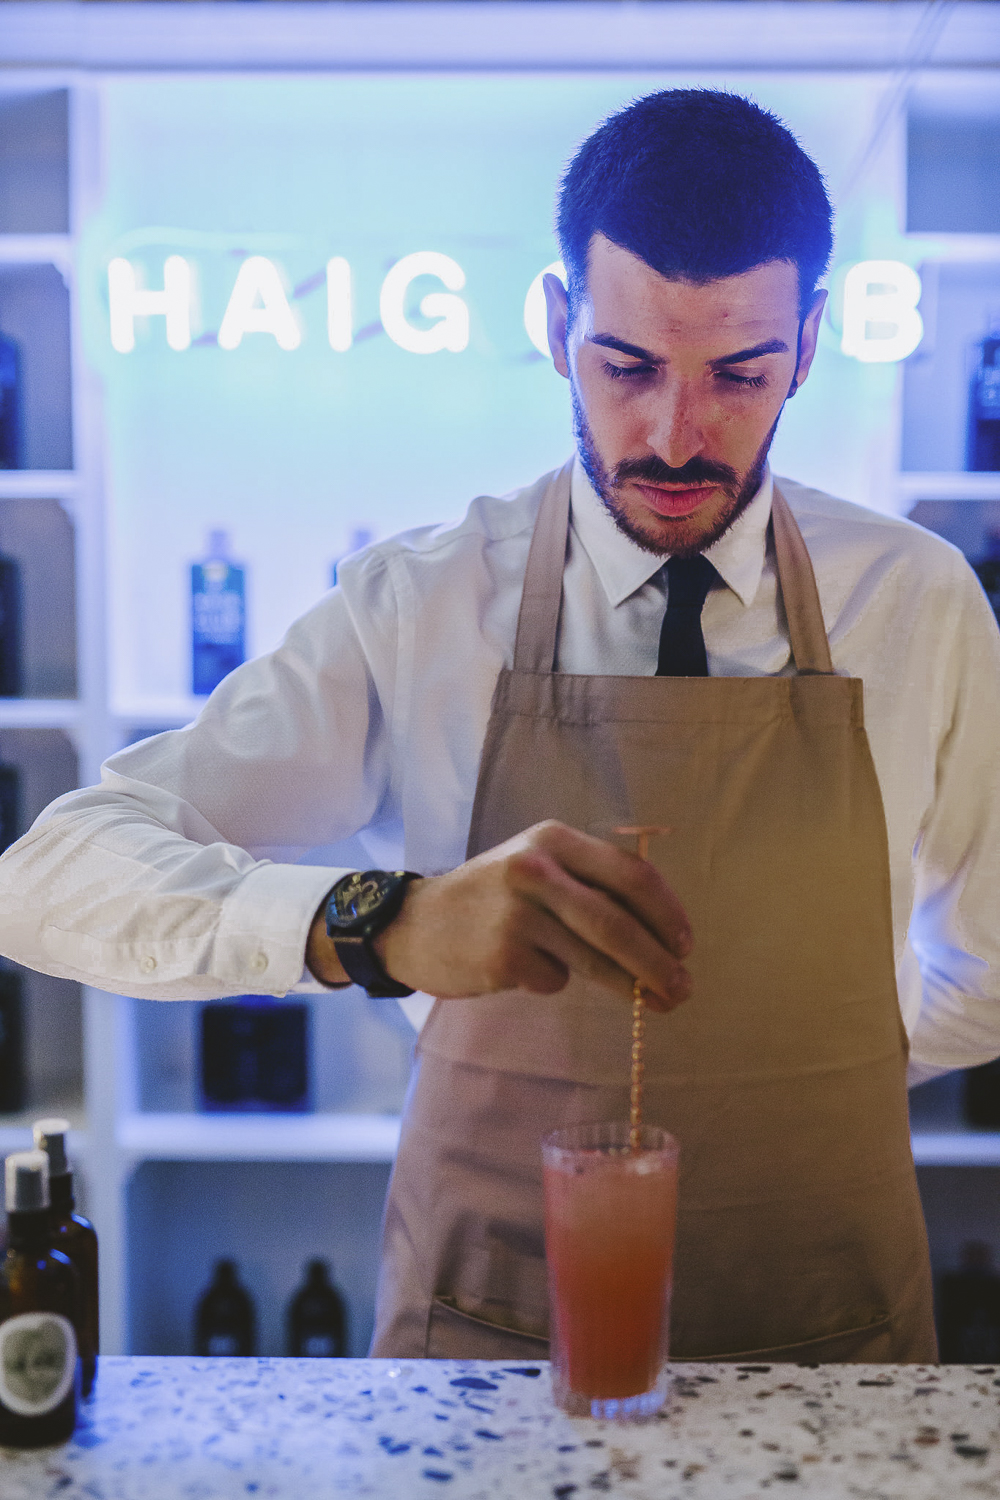 The Haig Club pop up bar